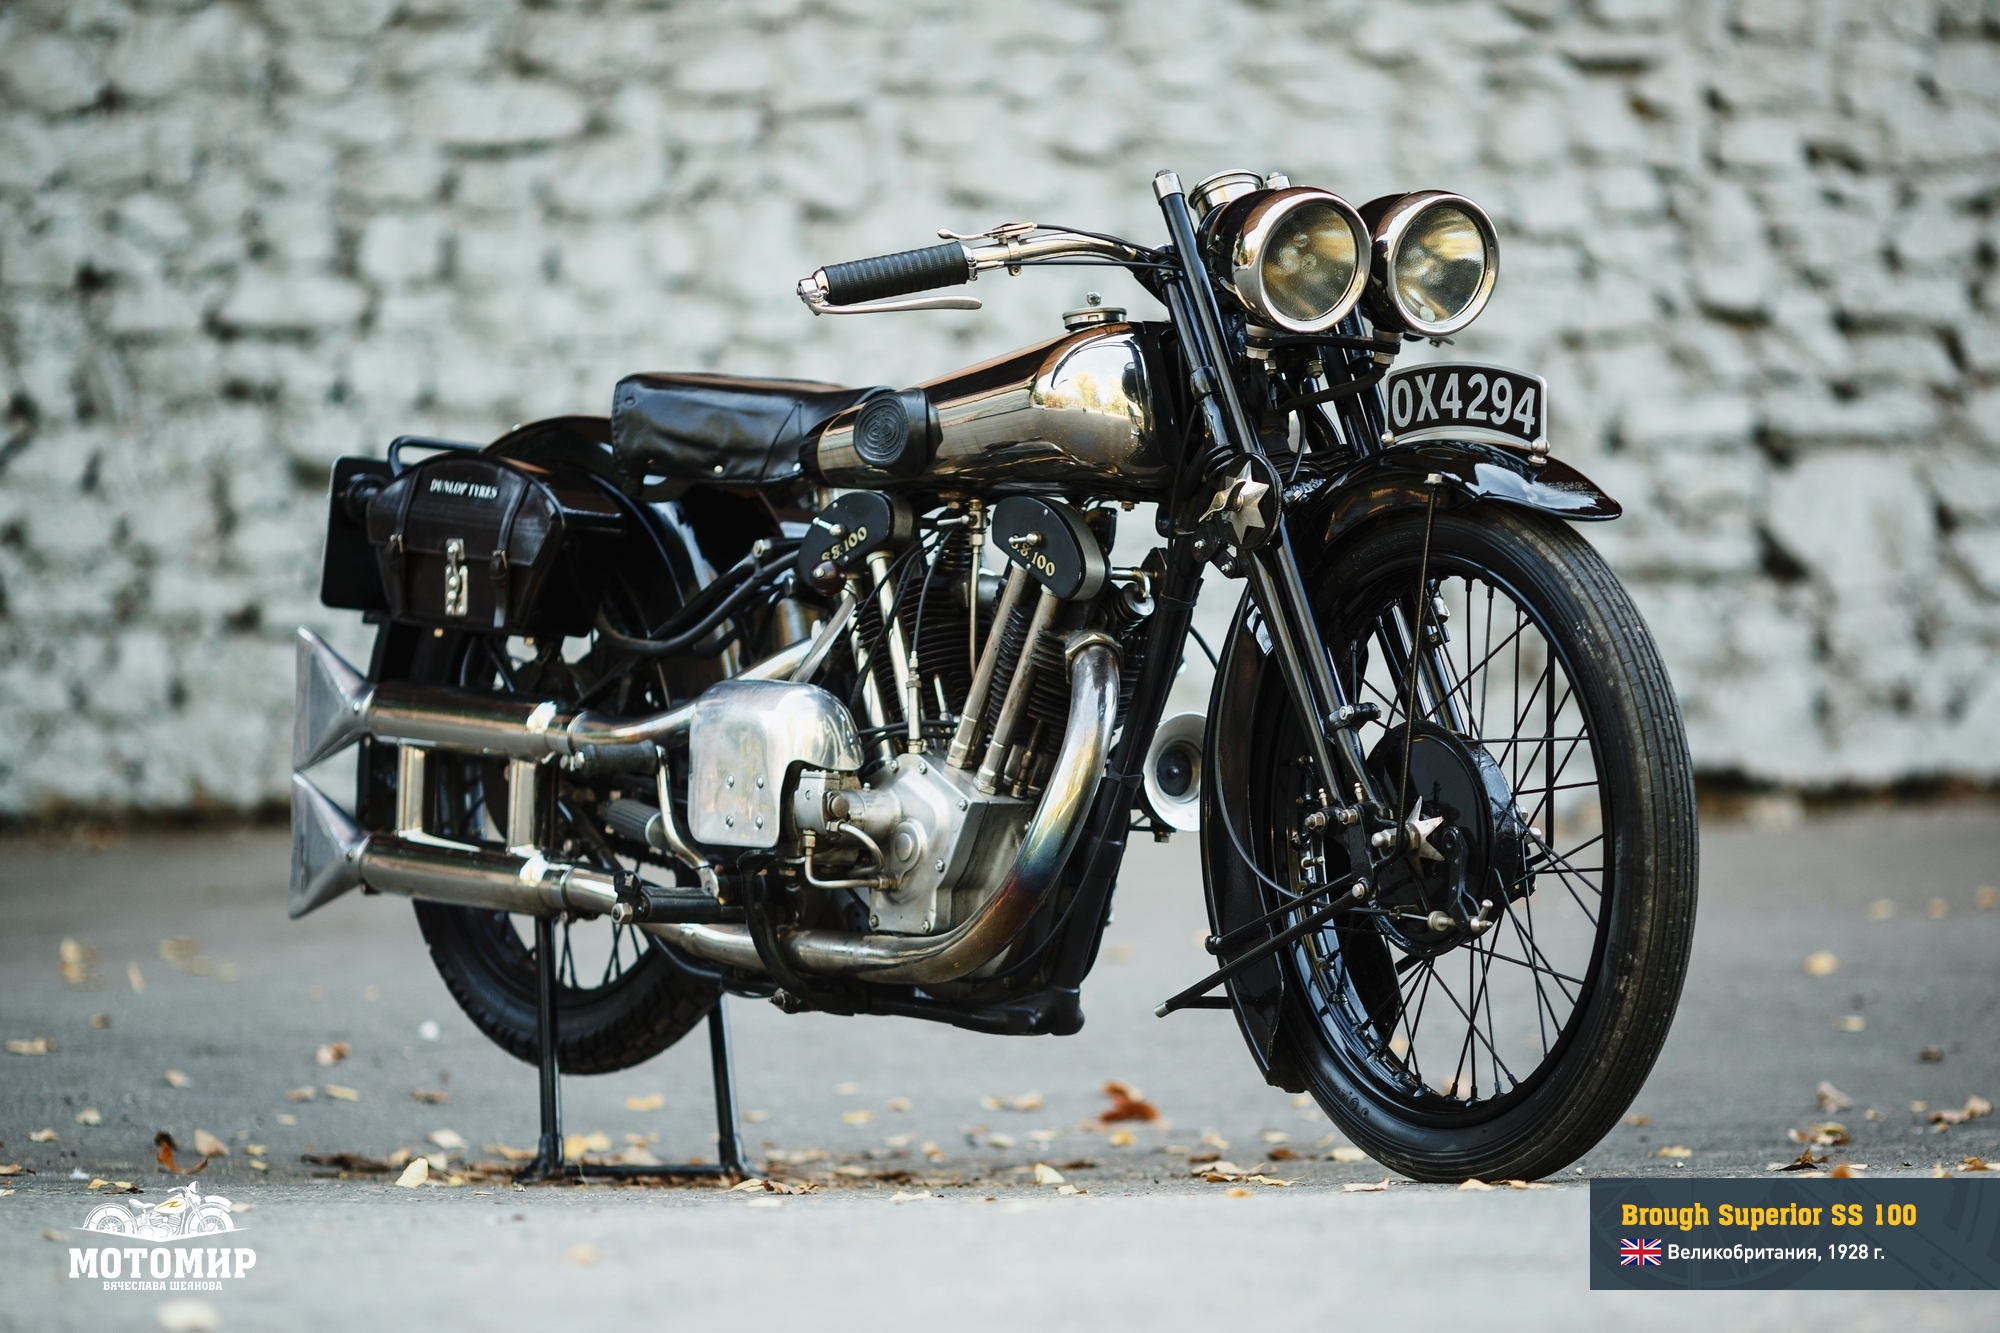 brough-superior-ss100-web-04